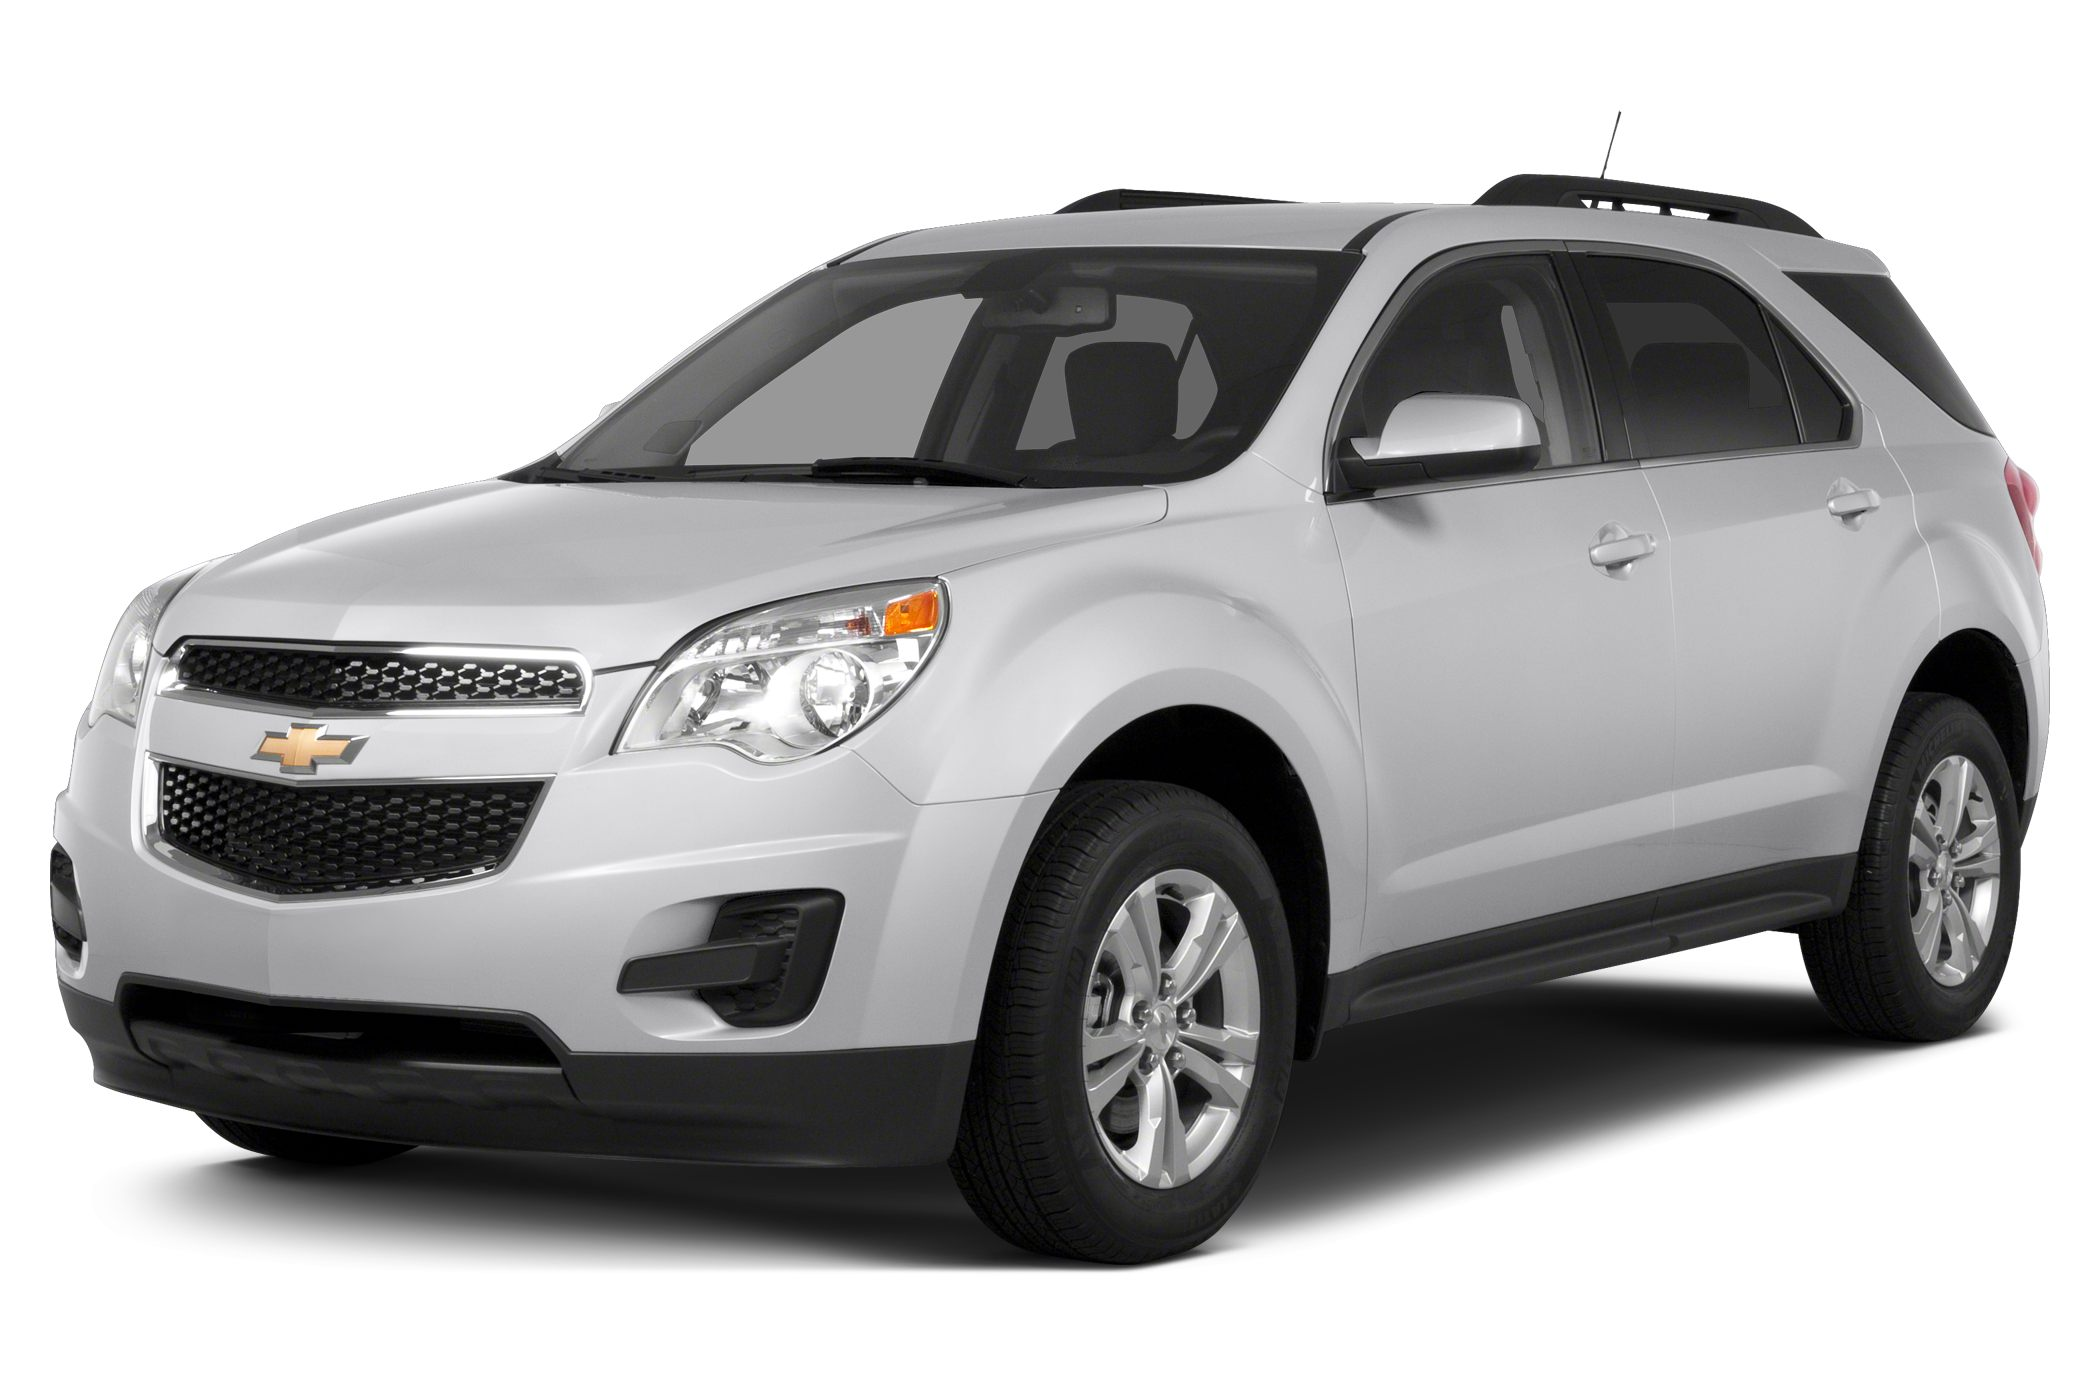 2013 Chevrolet Equinox 1LT SUV for sale in Bolingbrook for $18,872 with 35,773 miles.